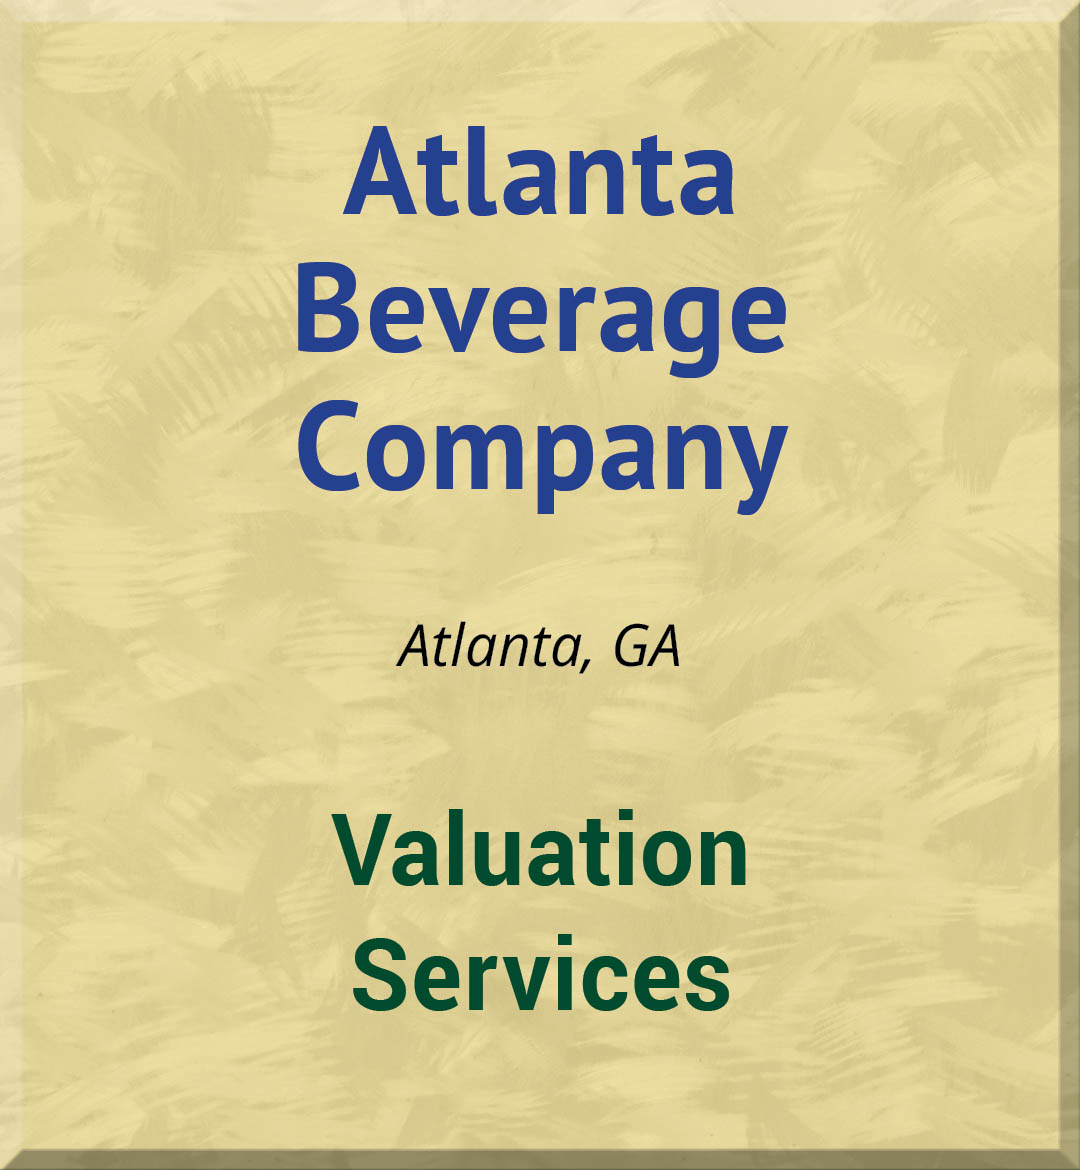 Atlanta Beverage Company